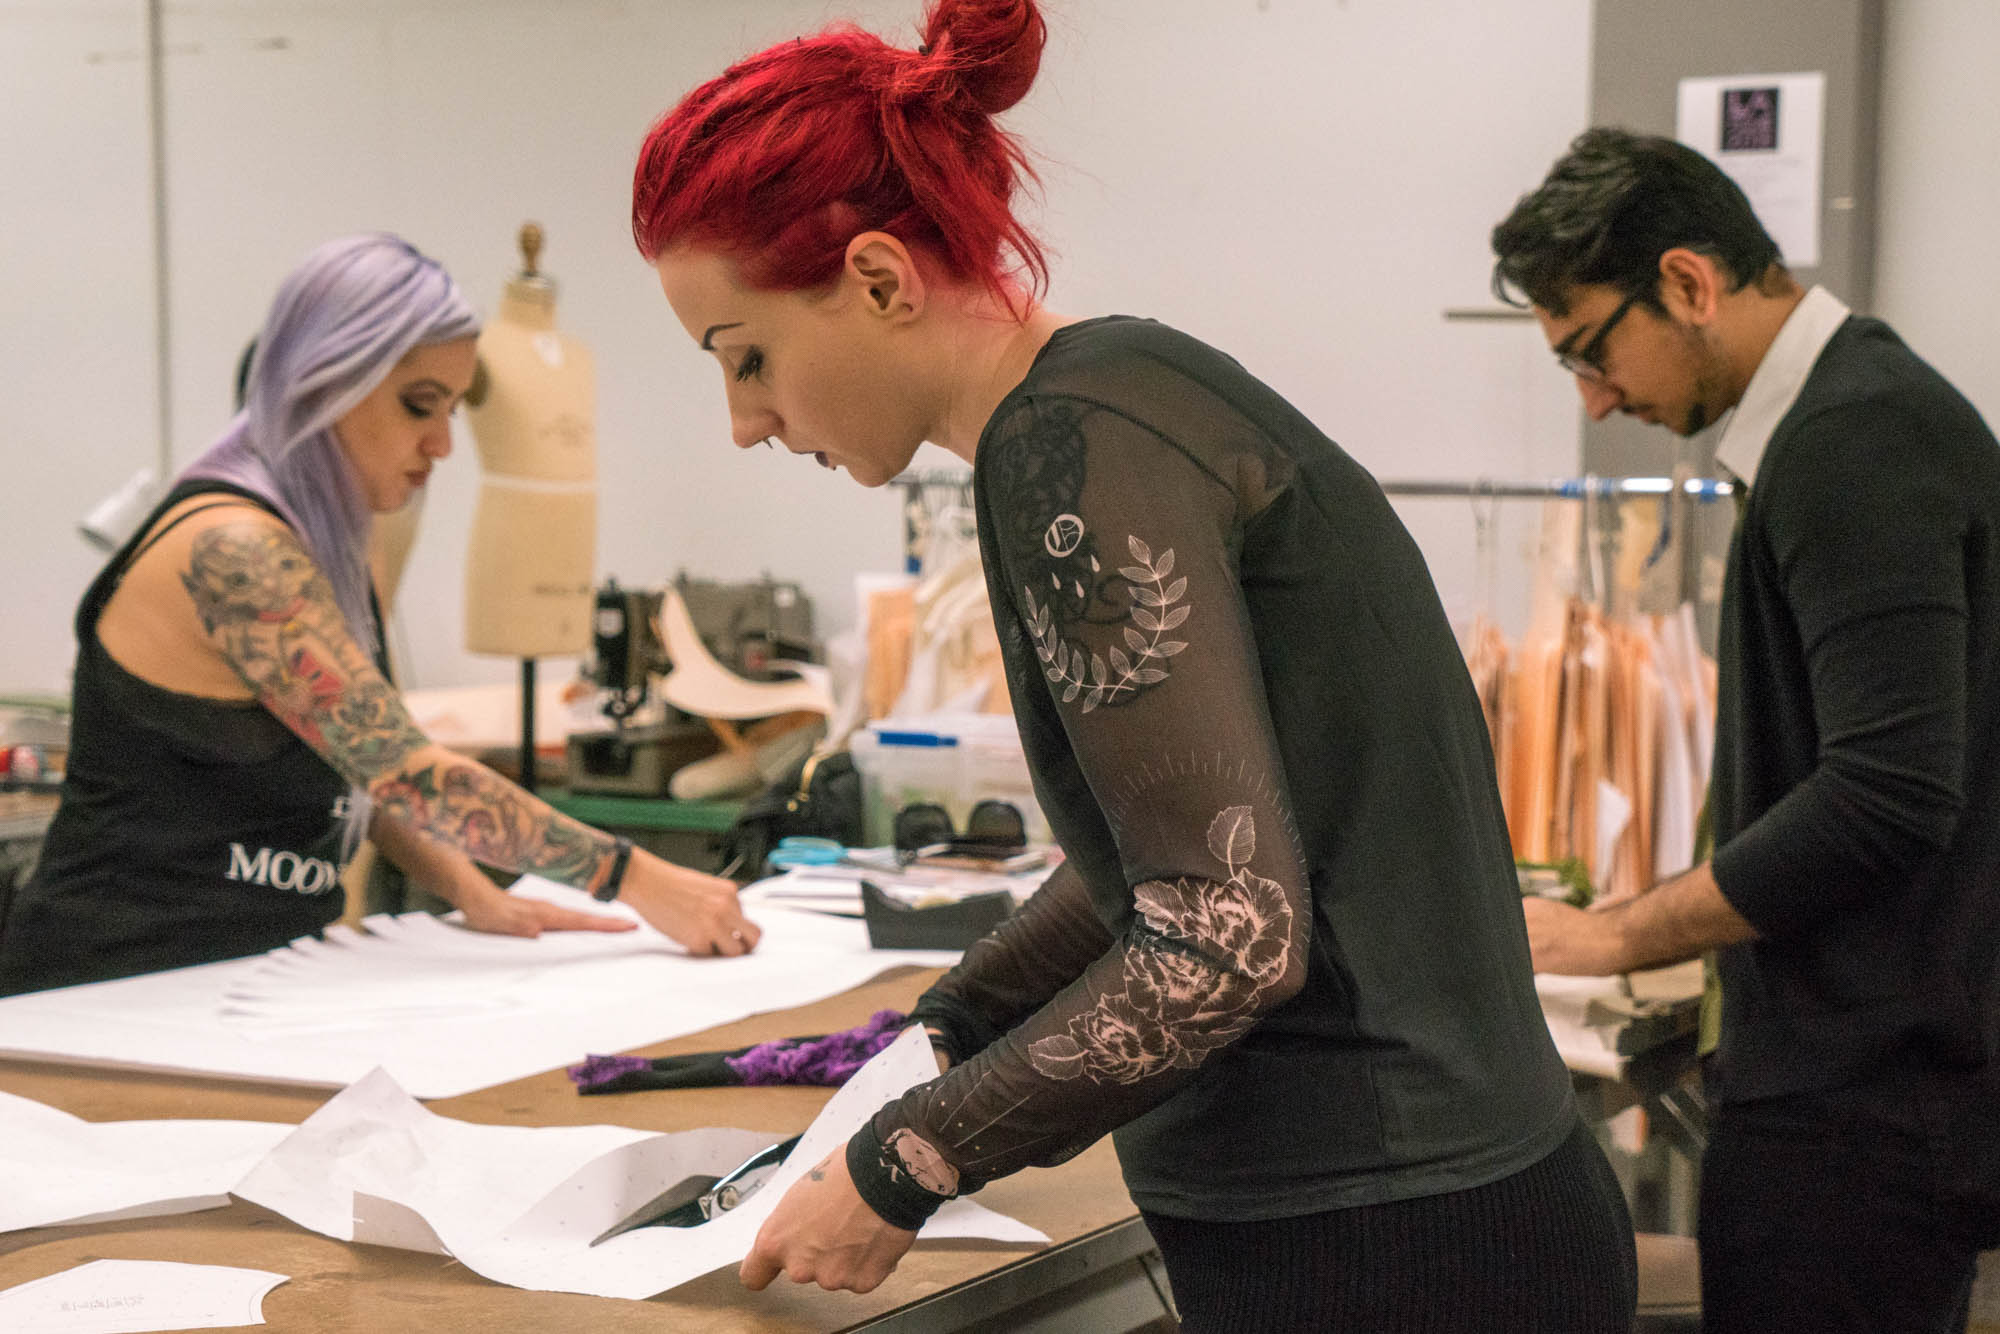 Abby Kahan, Shayan Pashai, and Sarah Lucier (left to right) working hard on their patterns. Photo by Rea Sohn/Corsair Contributor